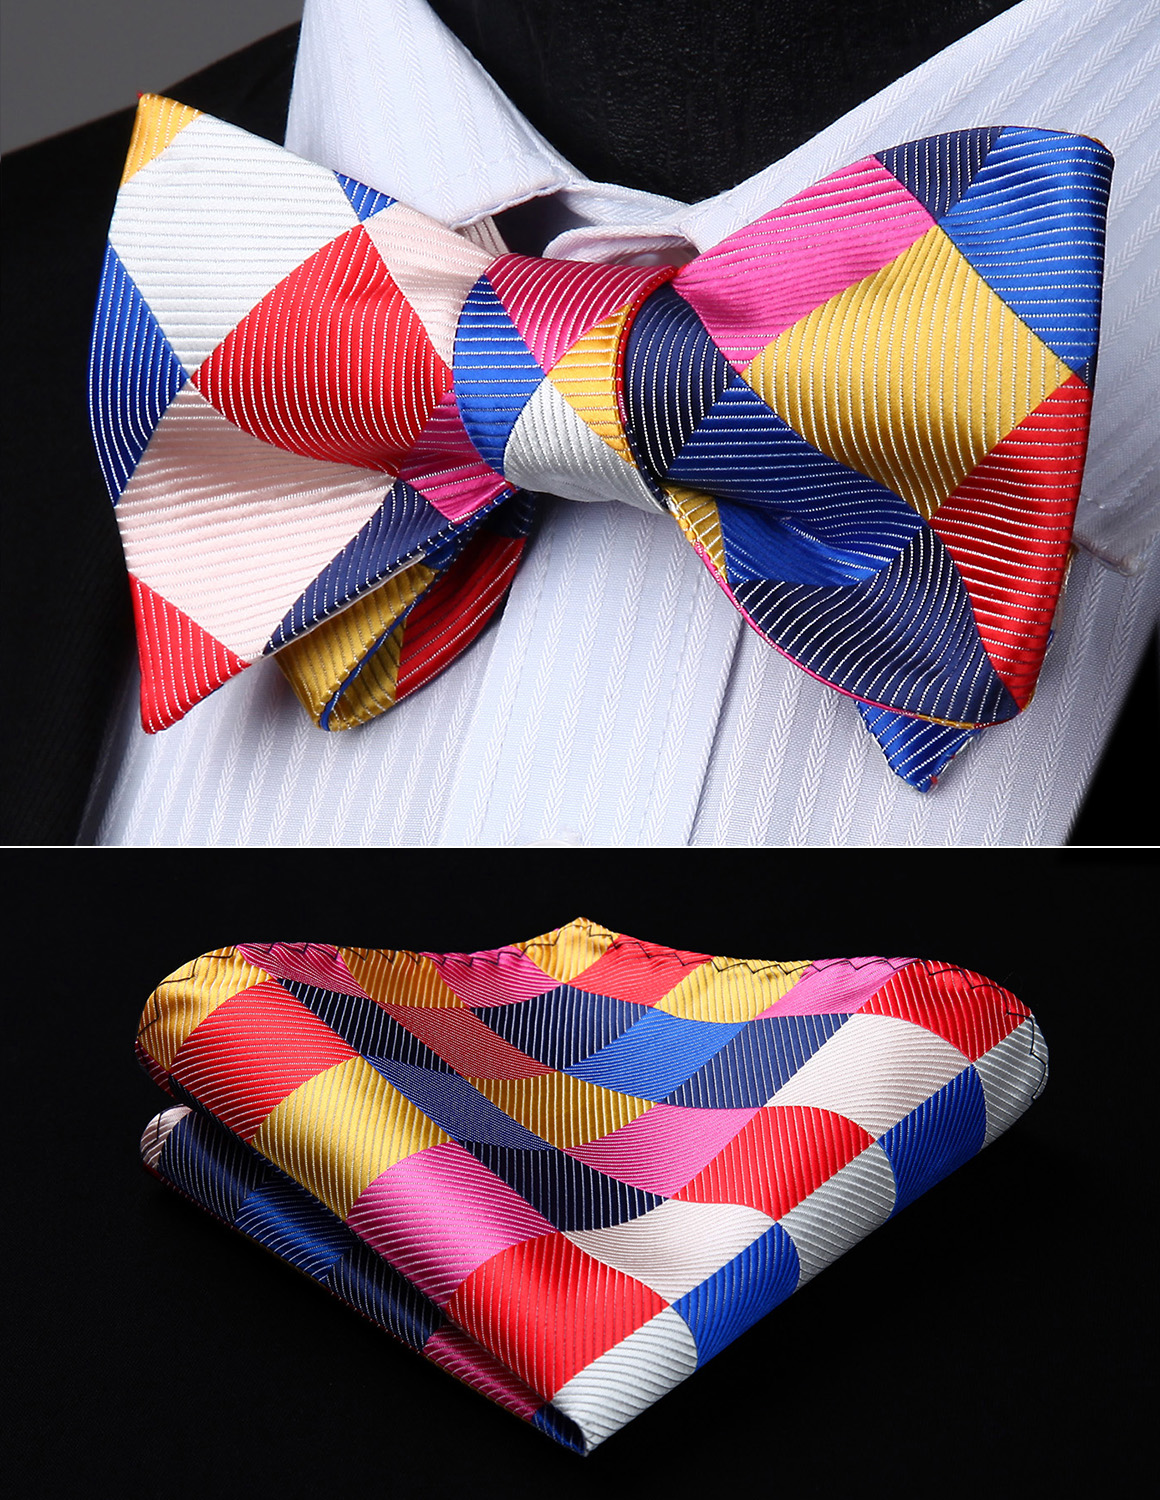 Men Woven Party Wedding White Red Pink Check Plaid Self Bow Tie Pocket Square Set#BC815KS Bow Tie Handkerchief Set